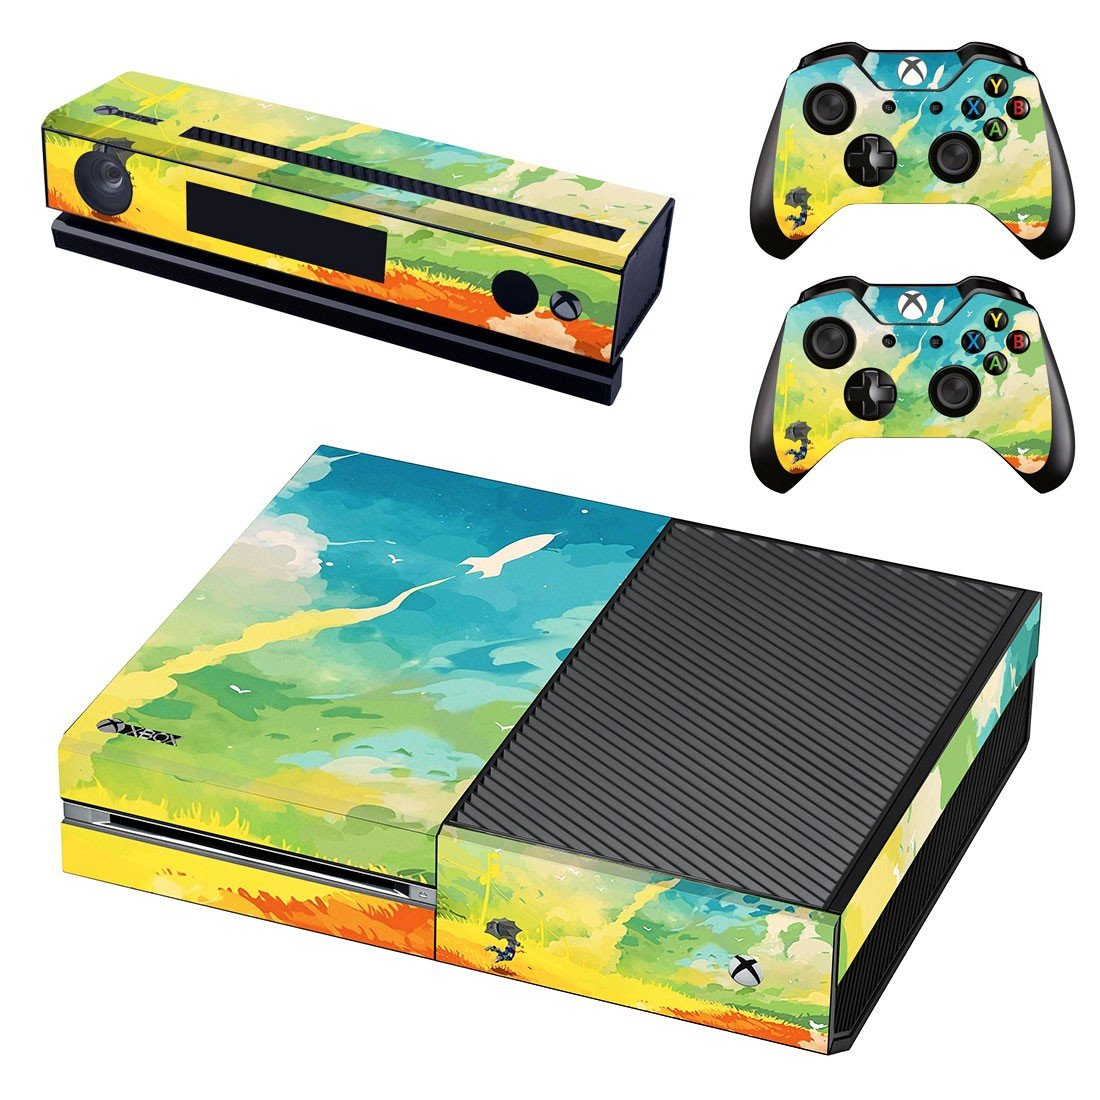 Painted Picture decal skin sticker for Xbox One console and controllers